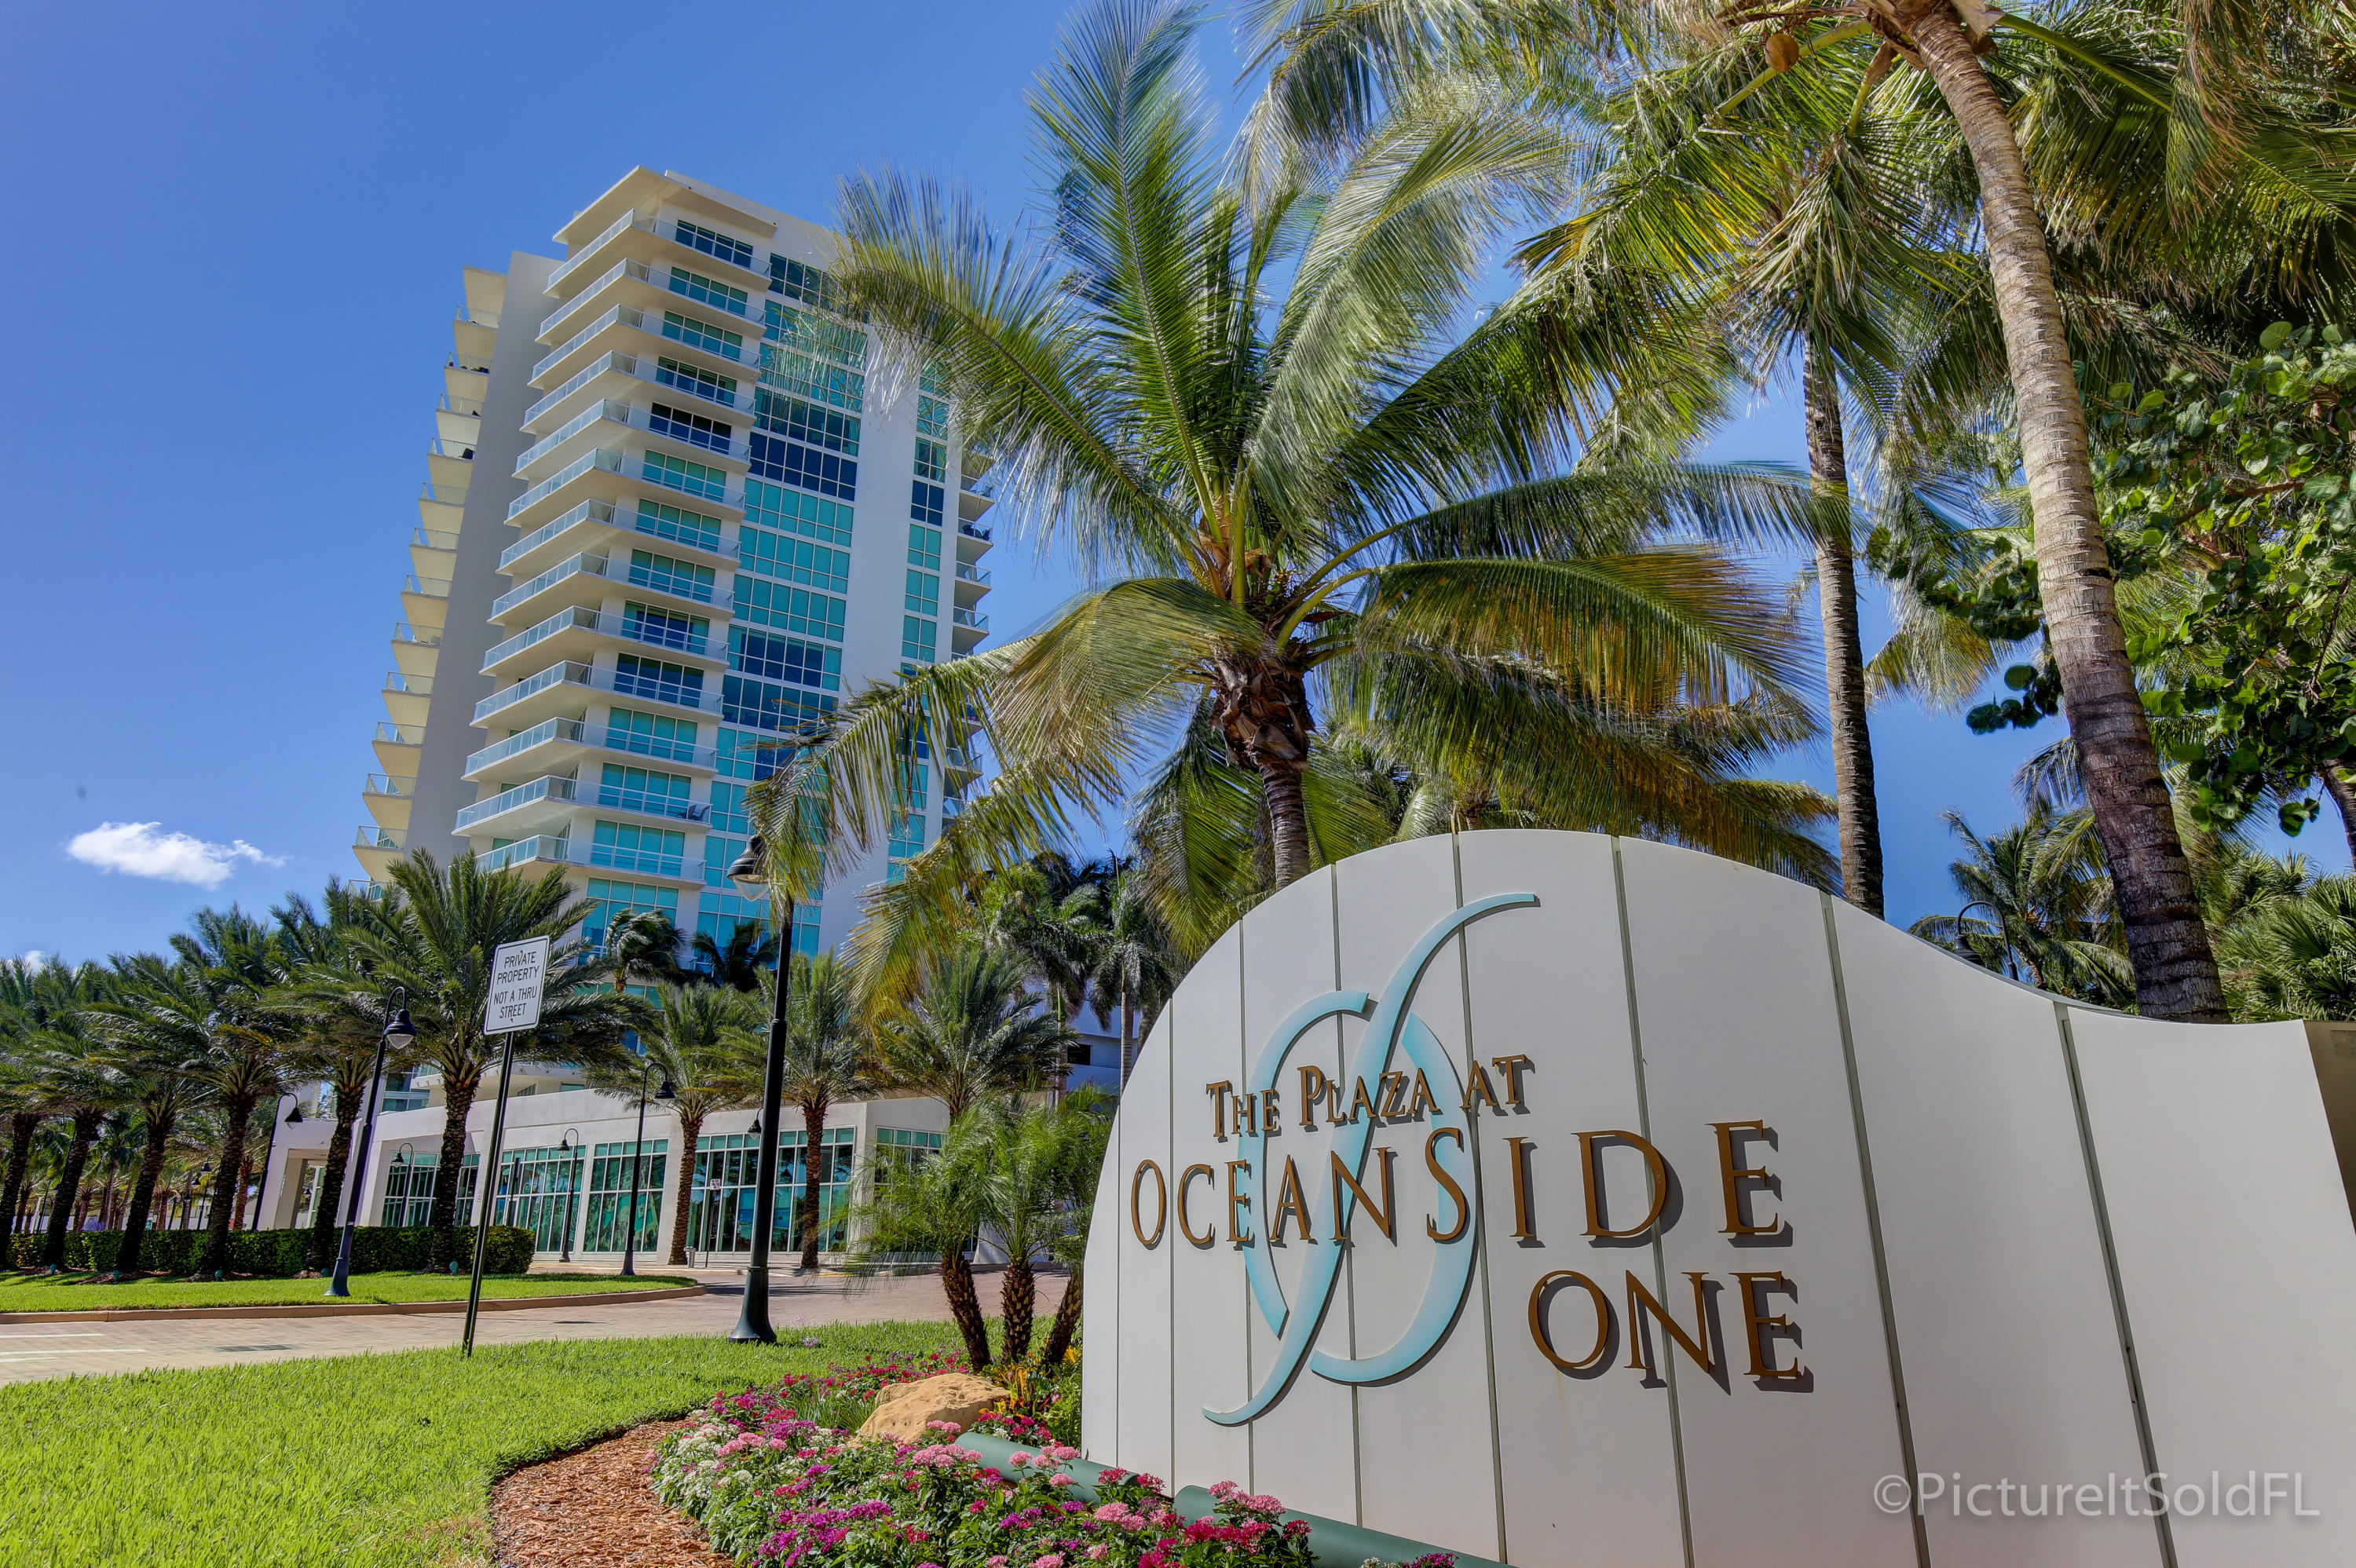 PLAZA AT OCEANSIDE (THE) CONDO UNIT 06 LEVEL 15 PER CDO BK/PG: 45228/866 AKA UNIT 06-15 AKA UNIT 1506